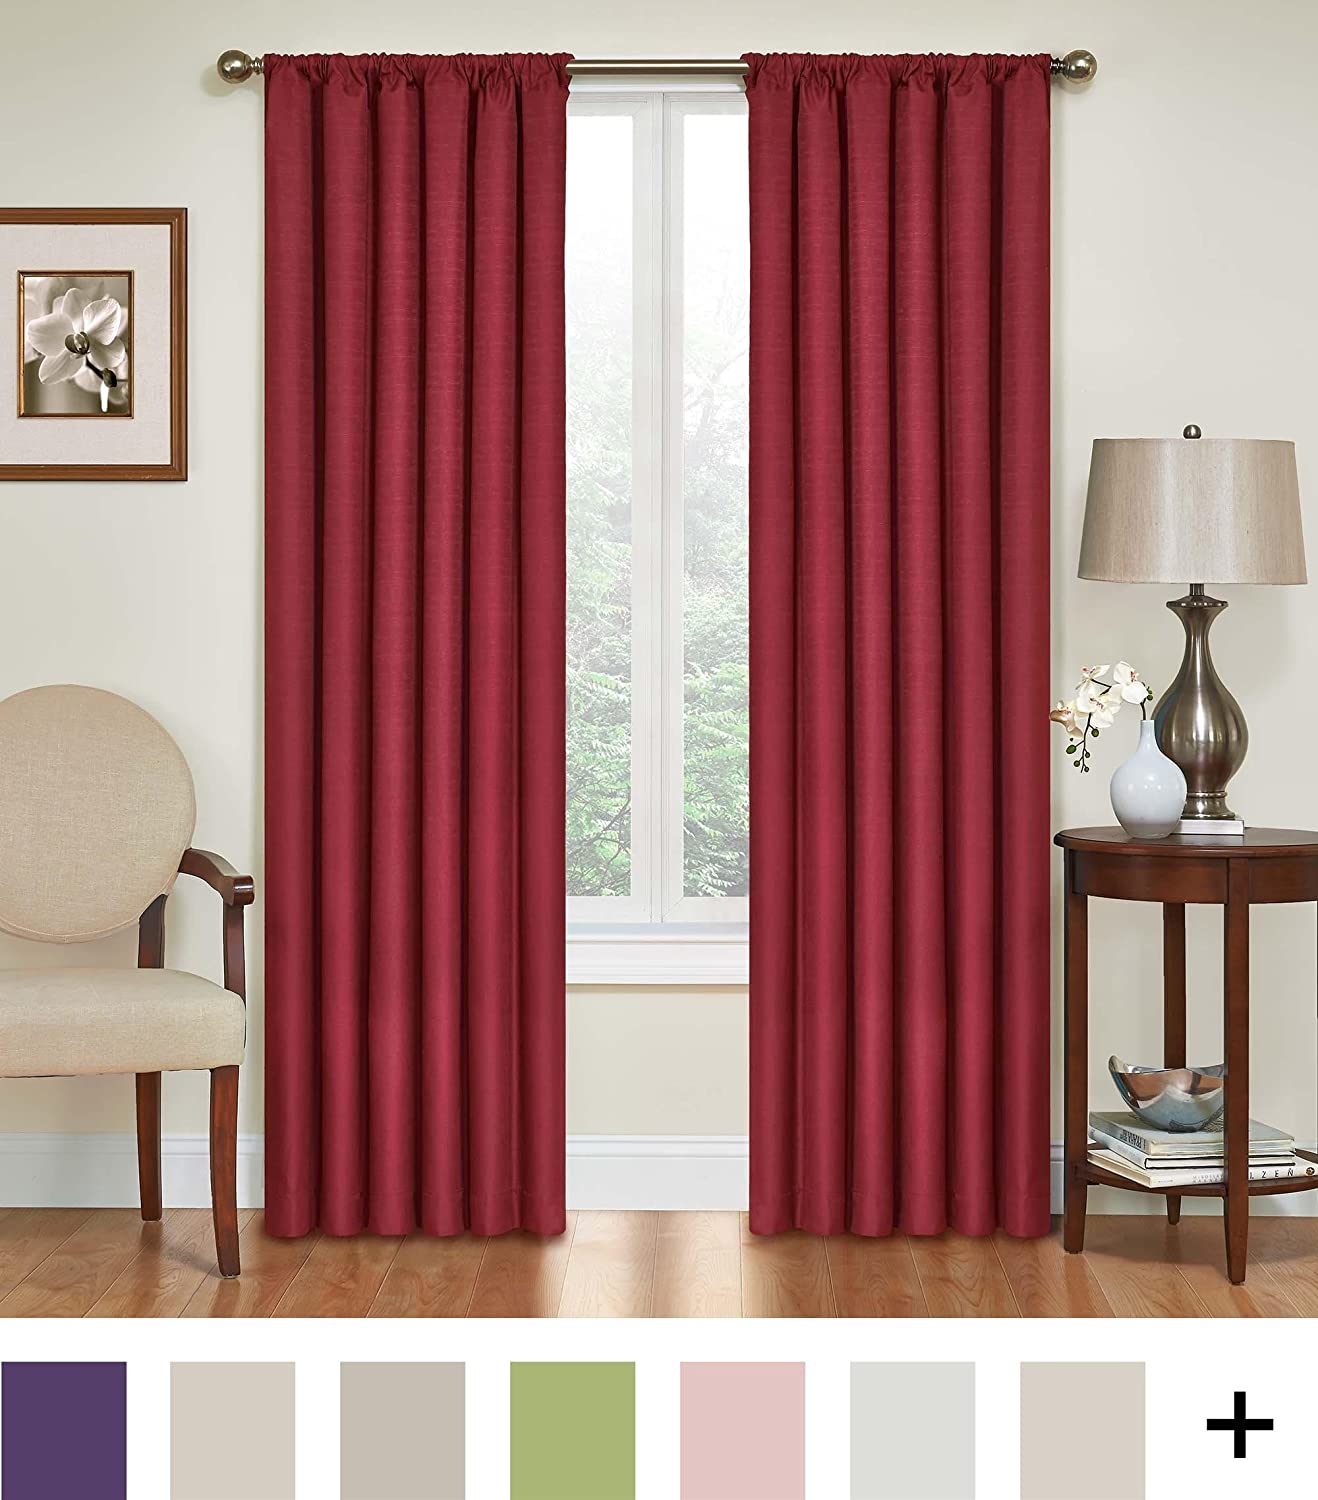 """ECLIPSE Blackout Curtains for Bedroom - Kendall Insulated Darkening Single Panel Rod Pocket Window Treatment Living Room, 42"""" x 84"""", Ruby"""